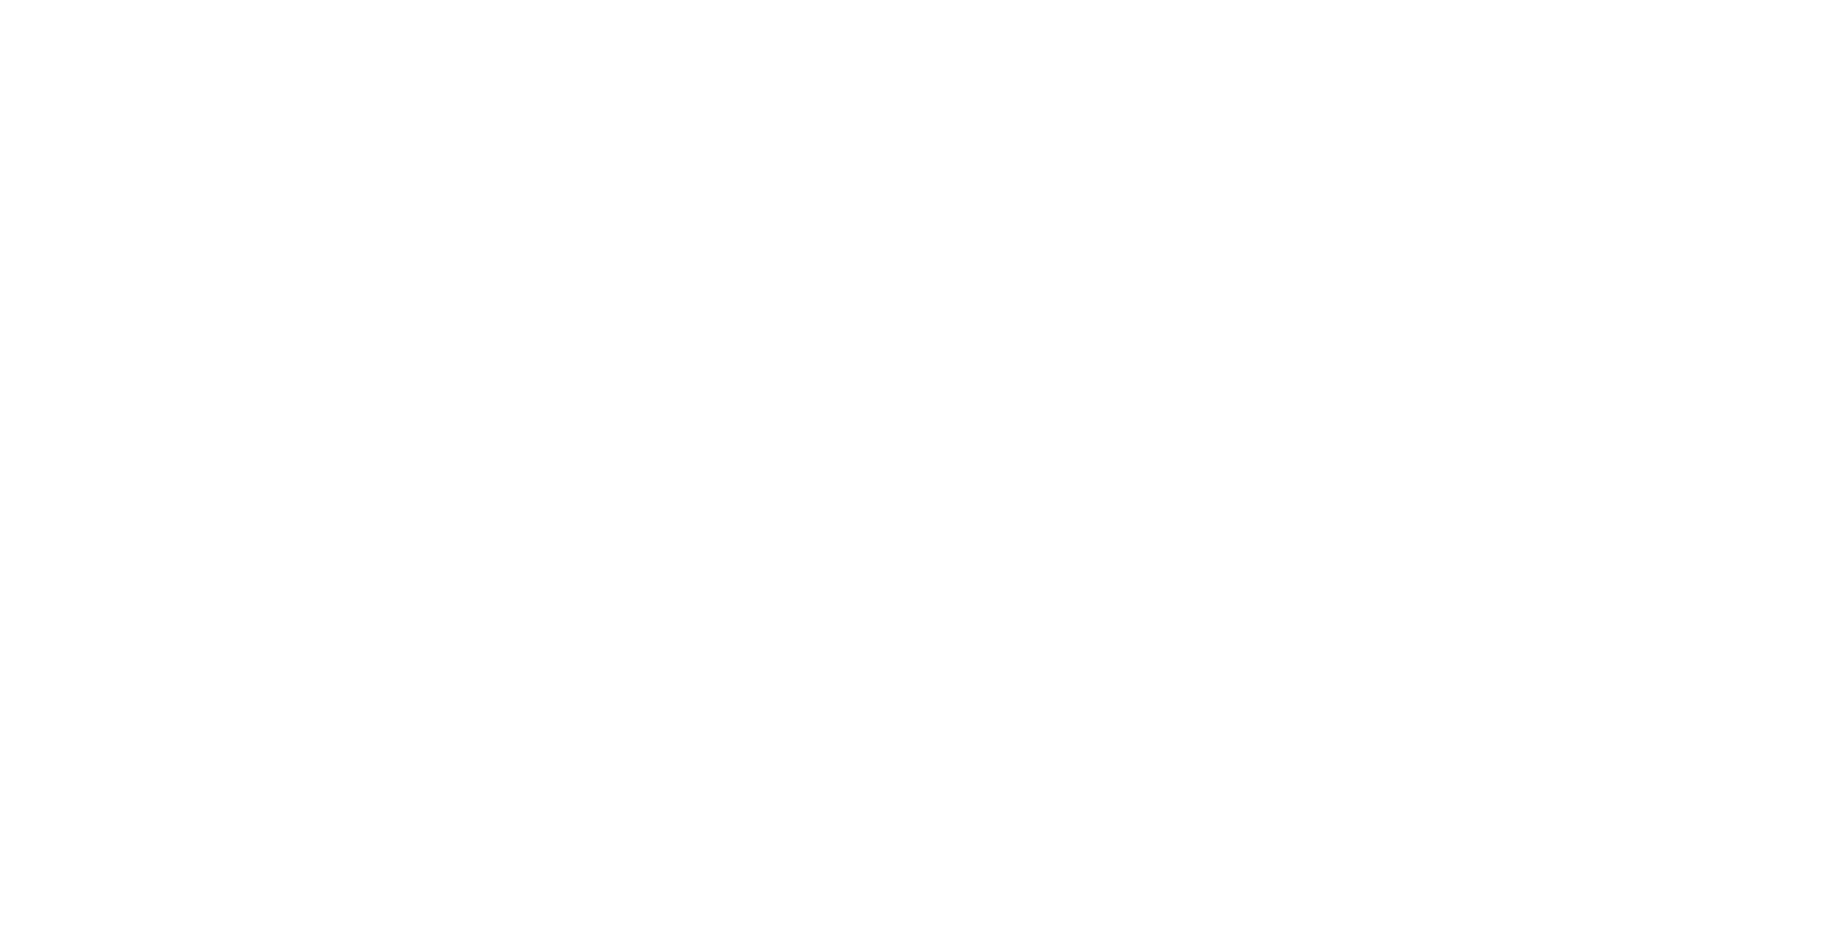 Community Christian Counseling of Terre Haute Indiana